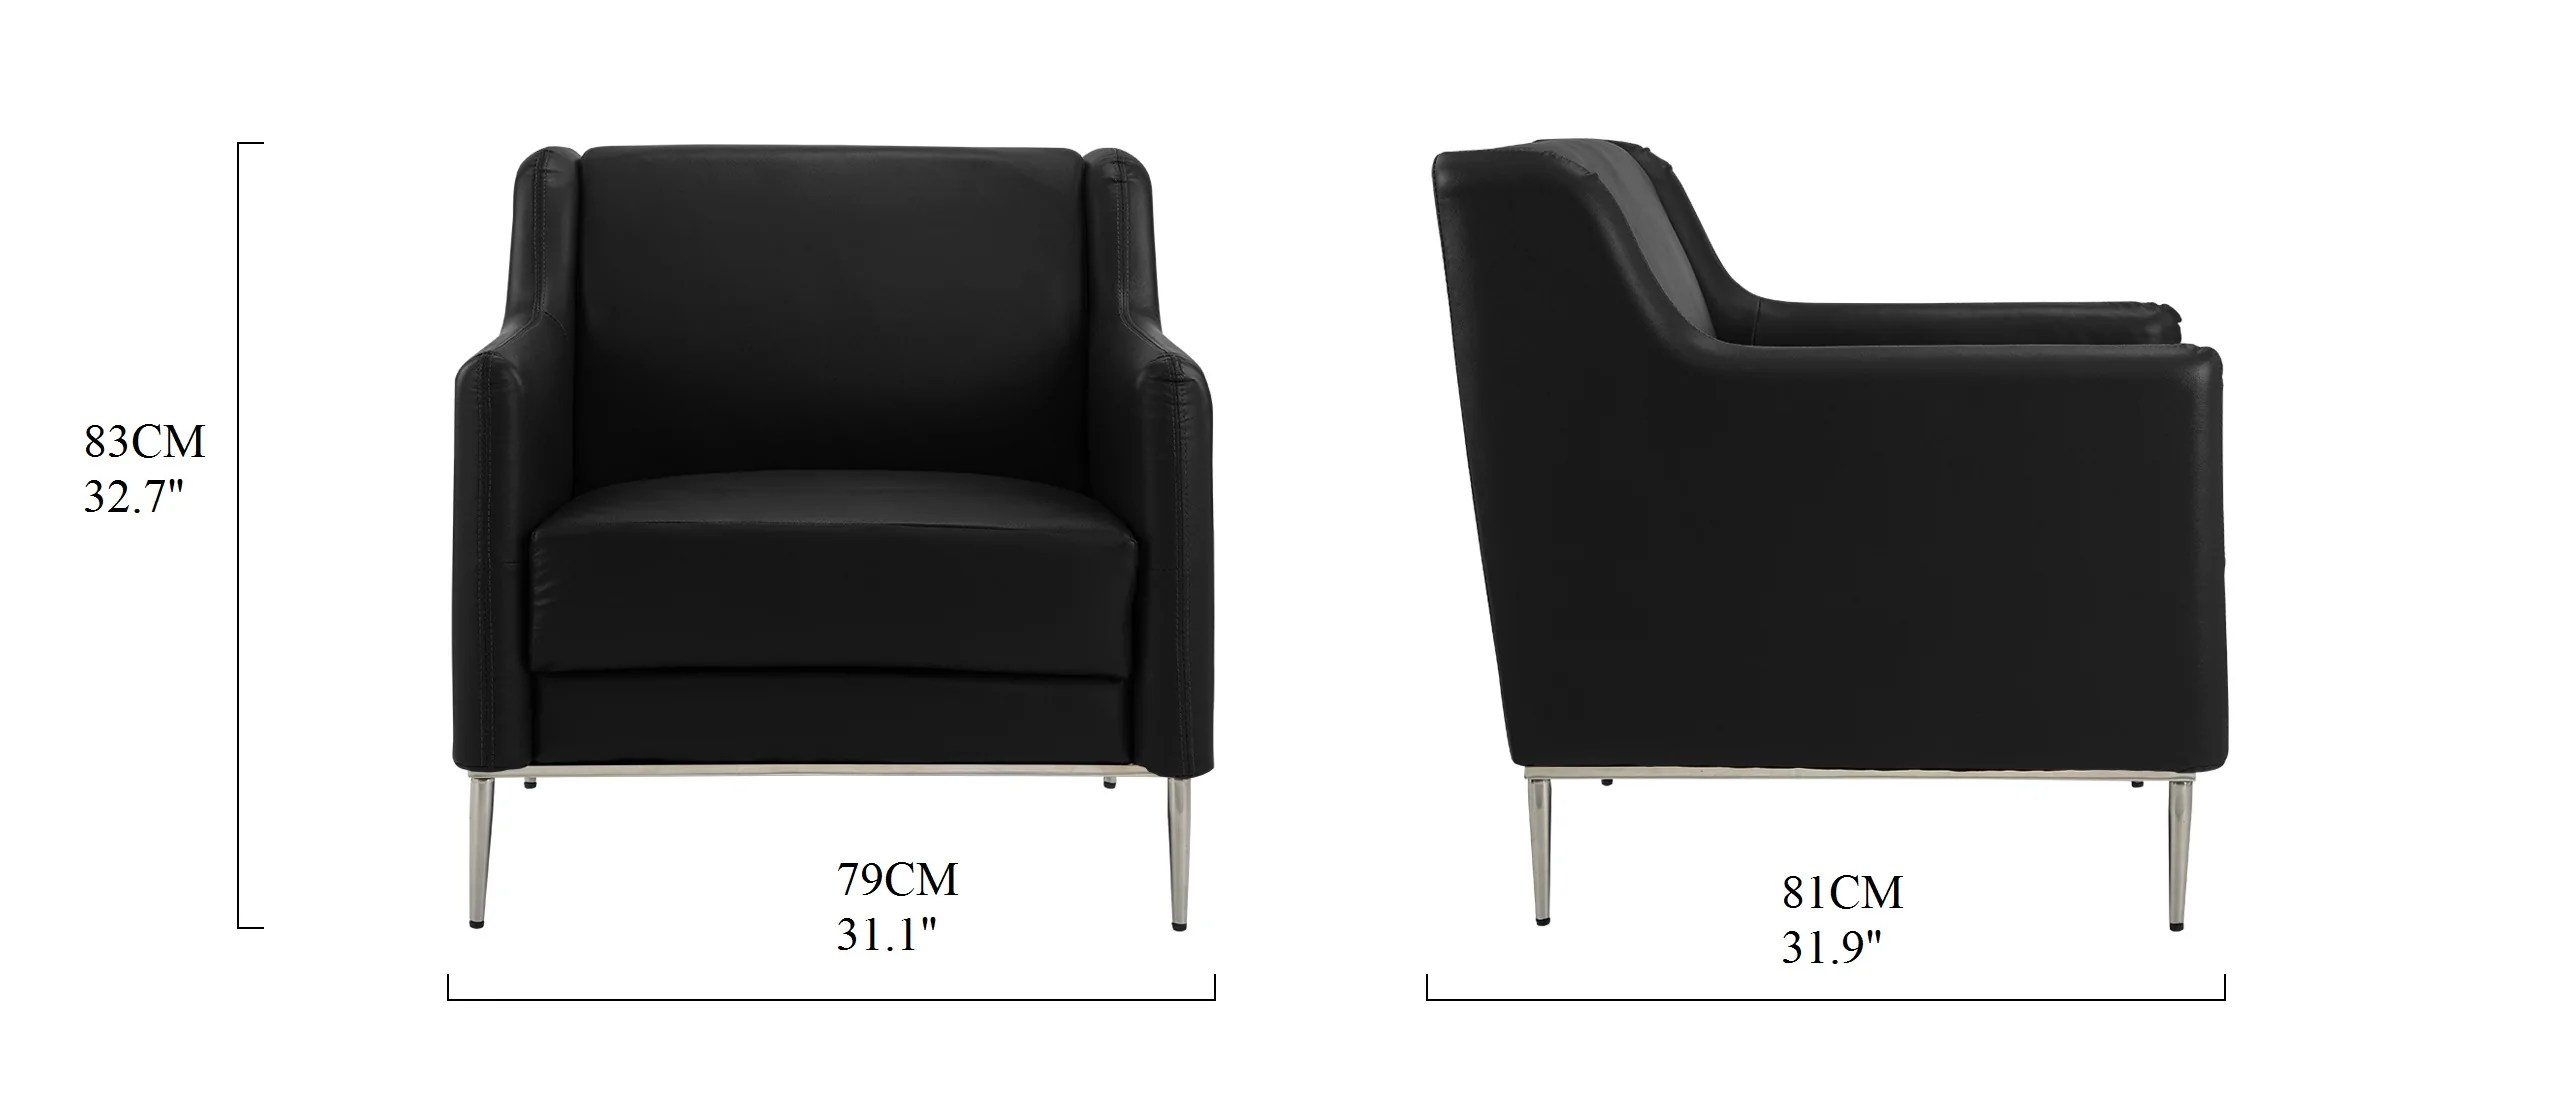 Accent Chairs To Go With Brown Leather Sofa Jem Modern Leather Match Accent Club Chair